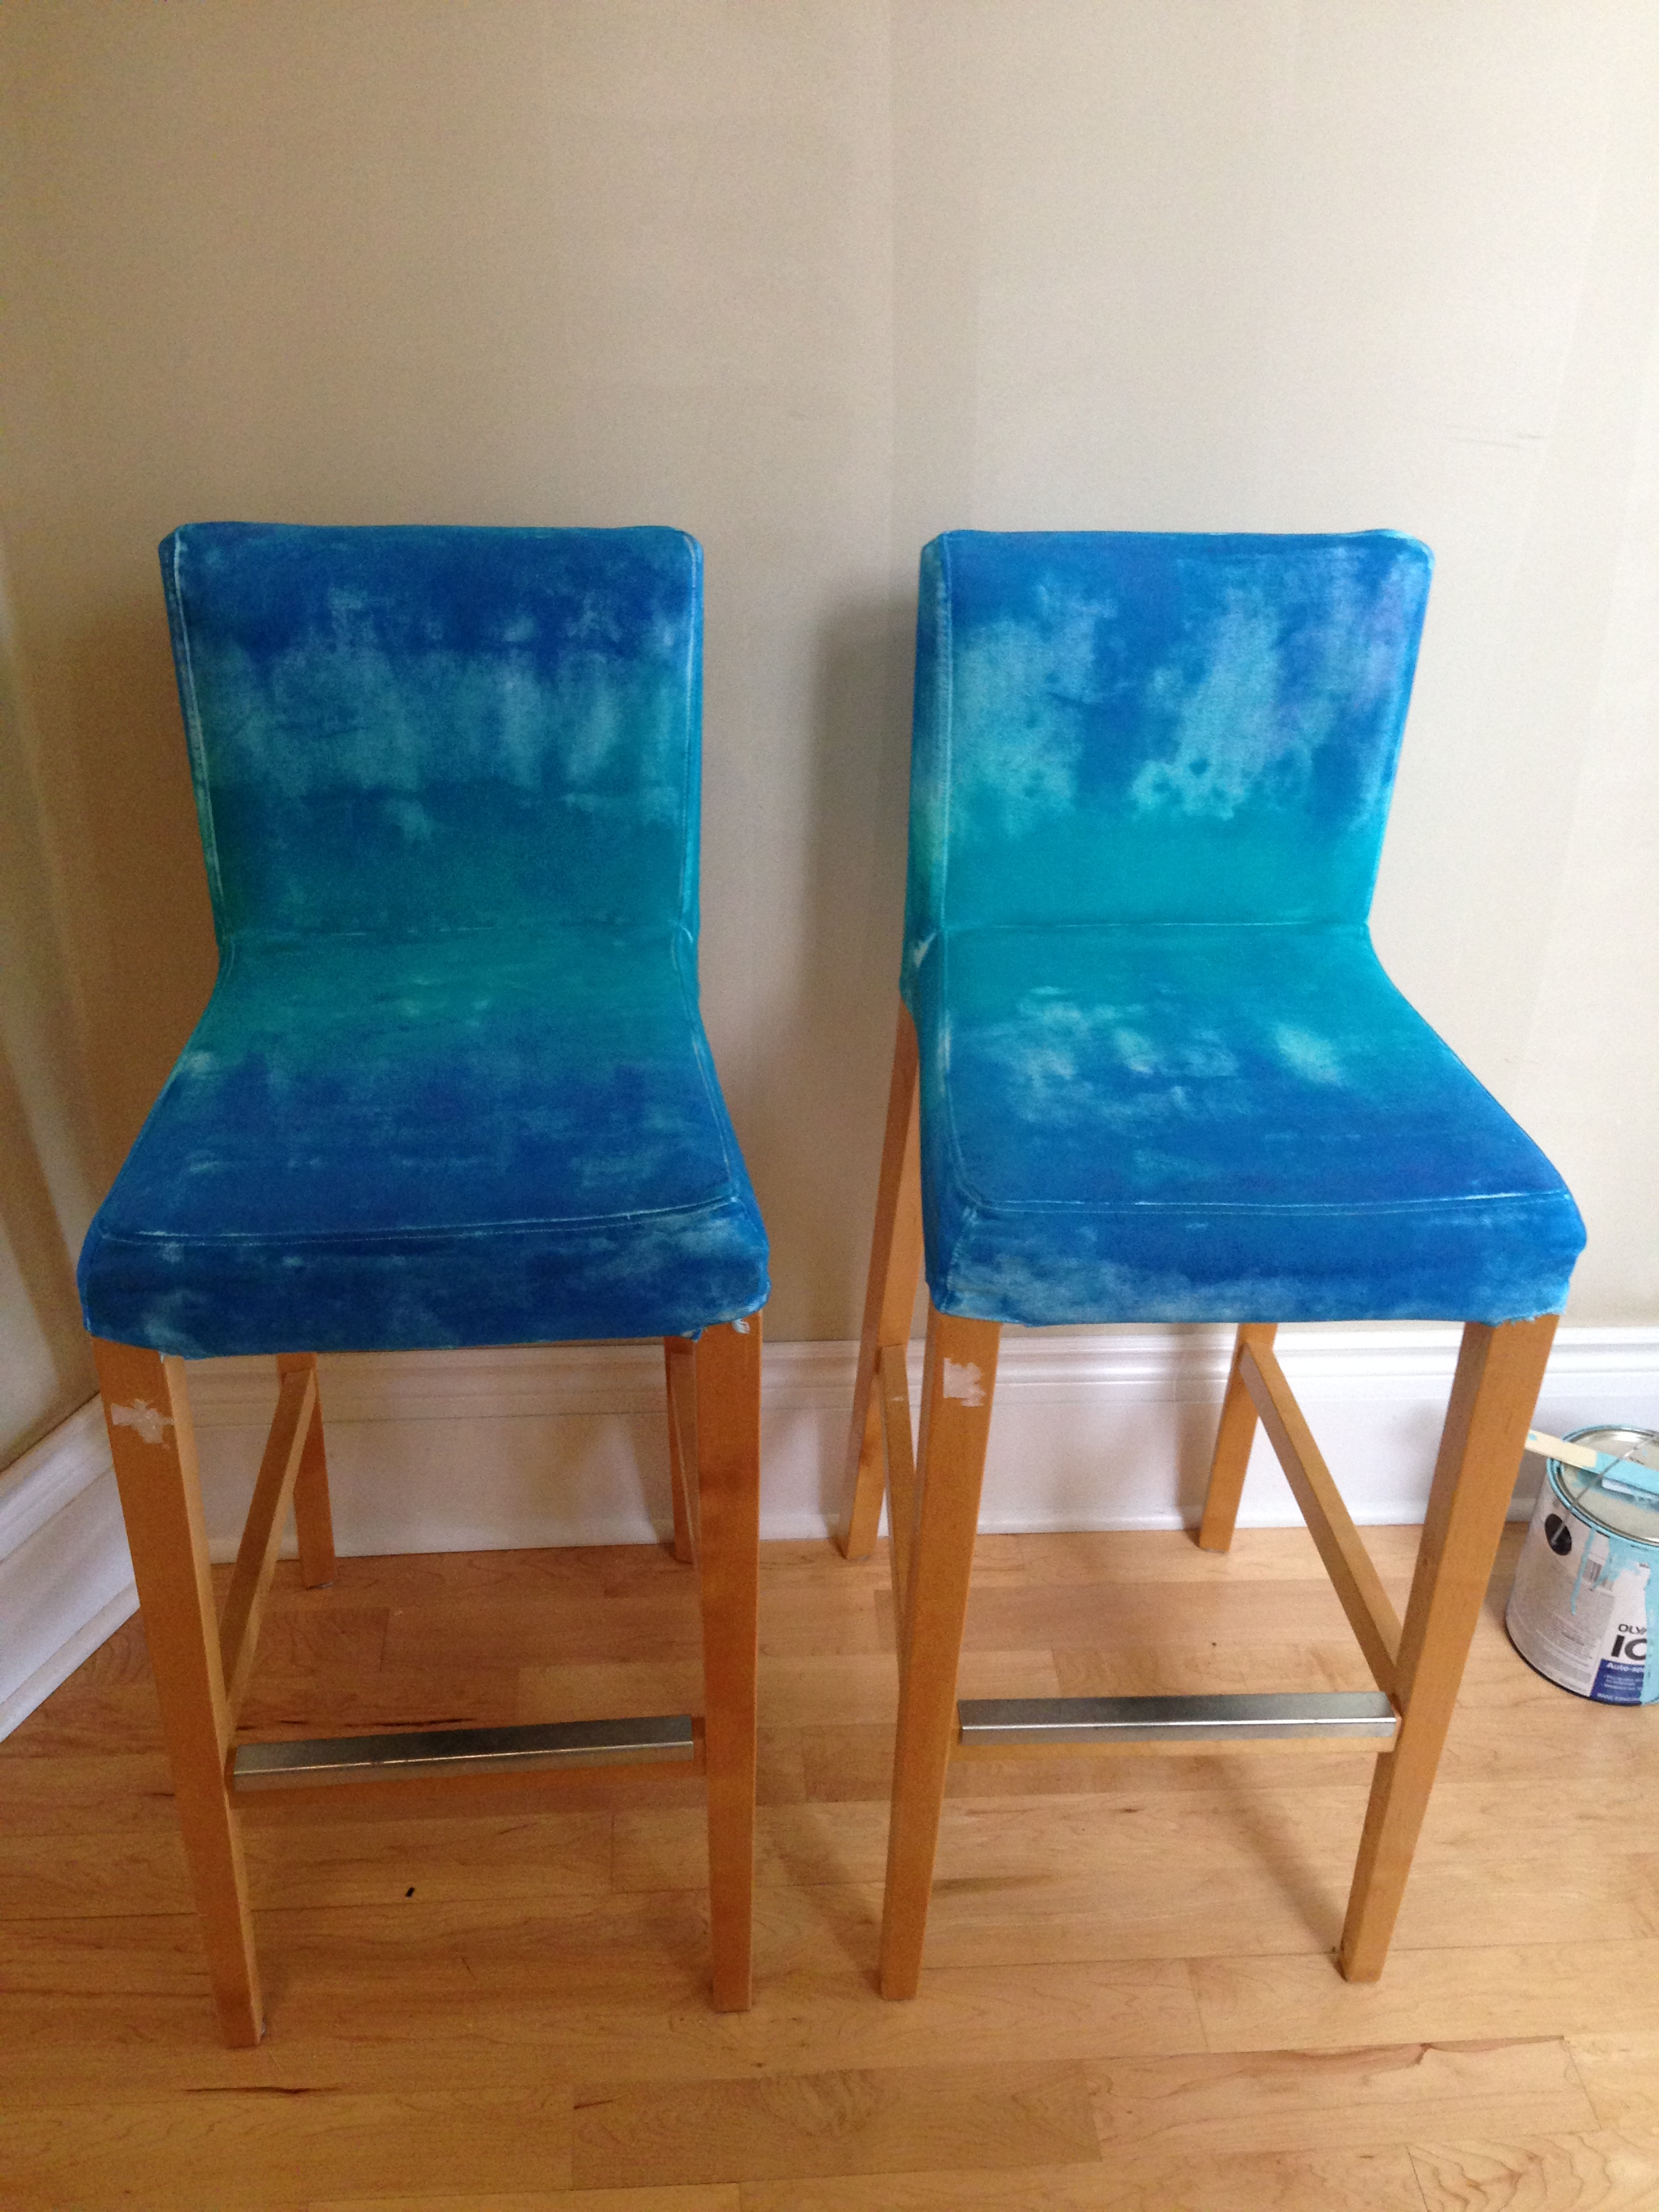 Half done tie-dye chairs